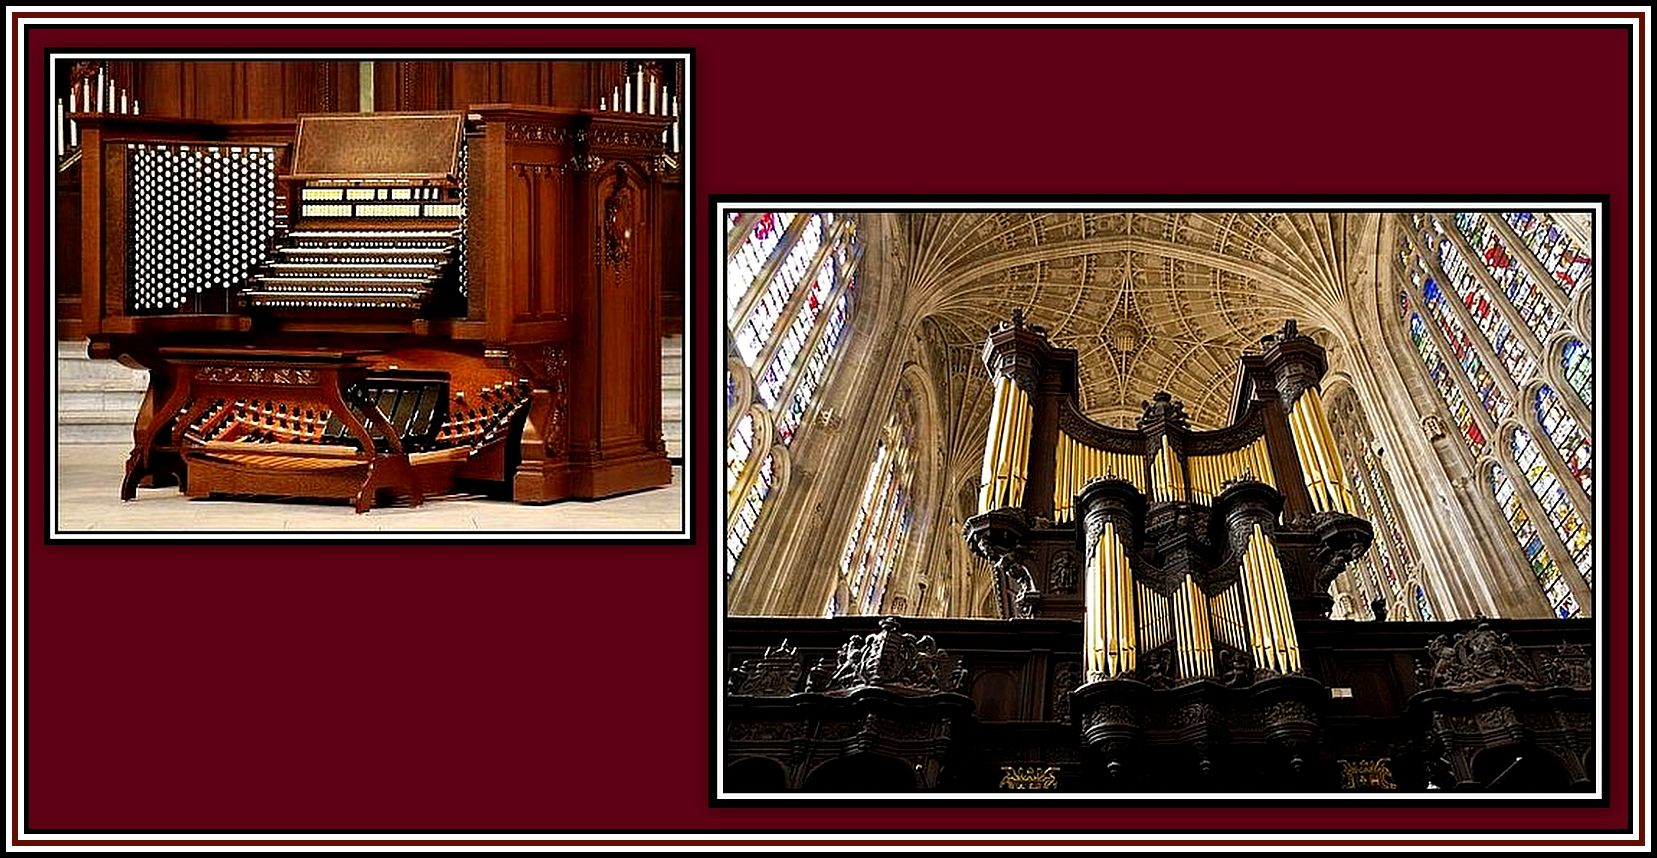 Church Organ Collage